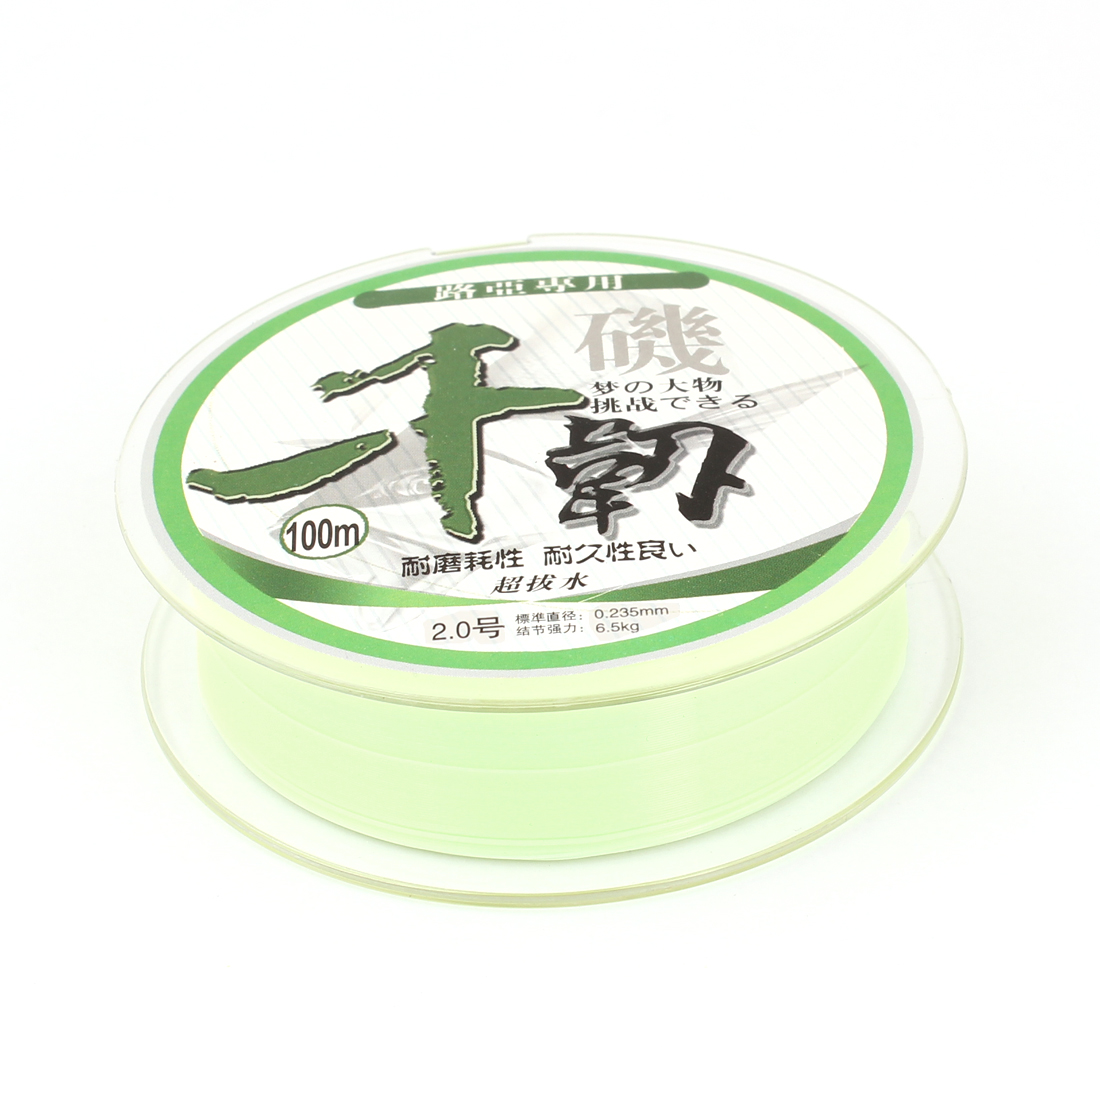 6.5Kg 14.3 lb 0.235mm Dia 100M Light Green Nylon Fishing Spool Line String